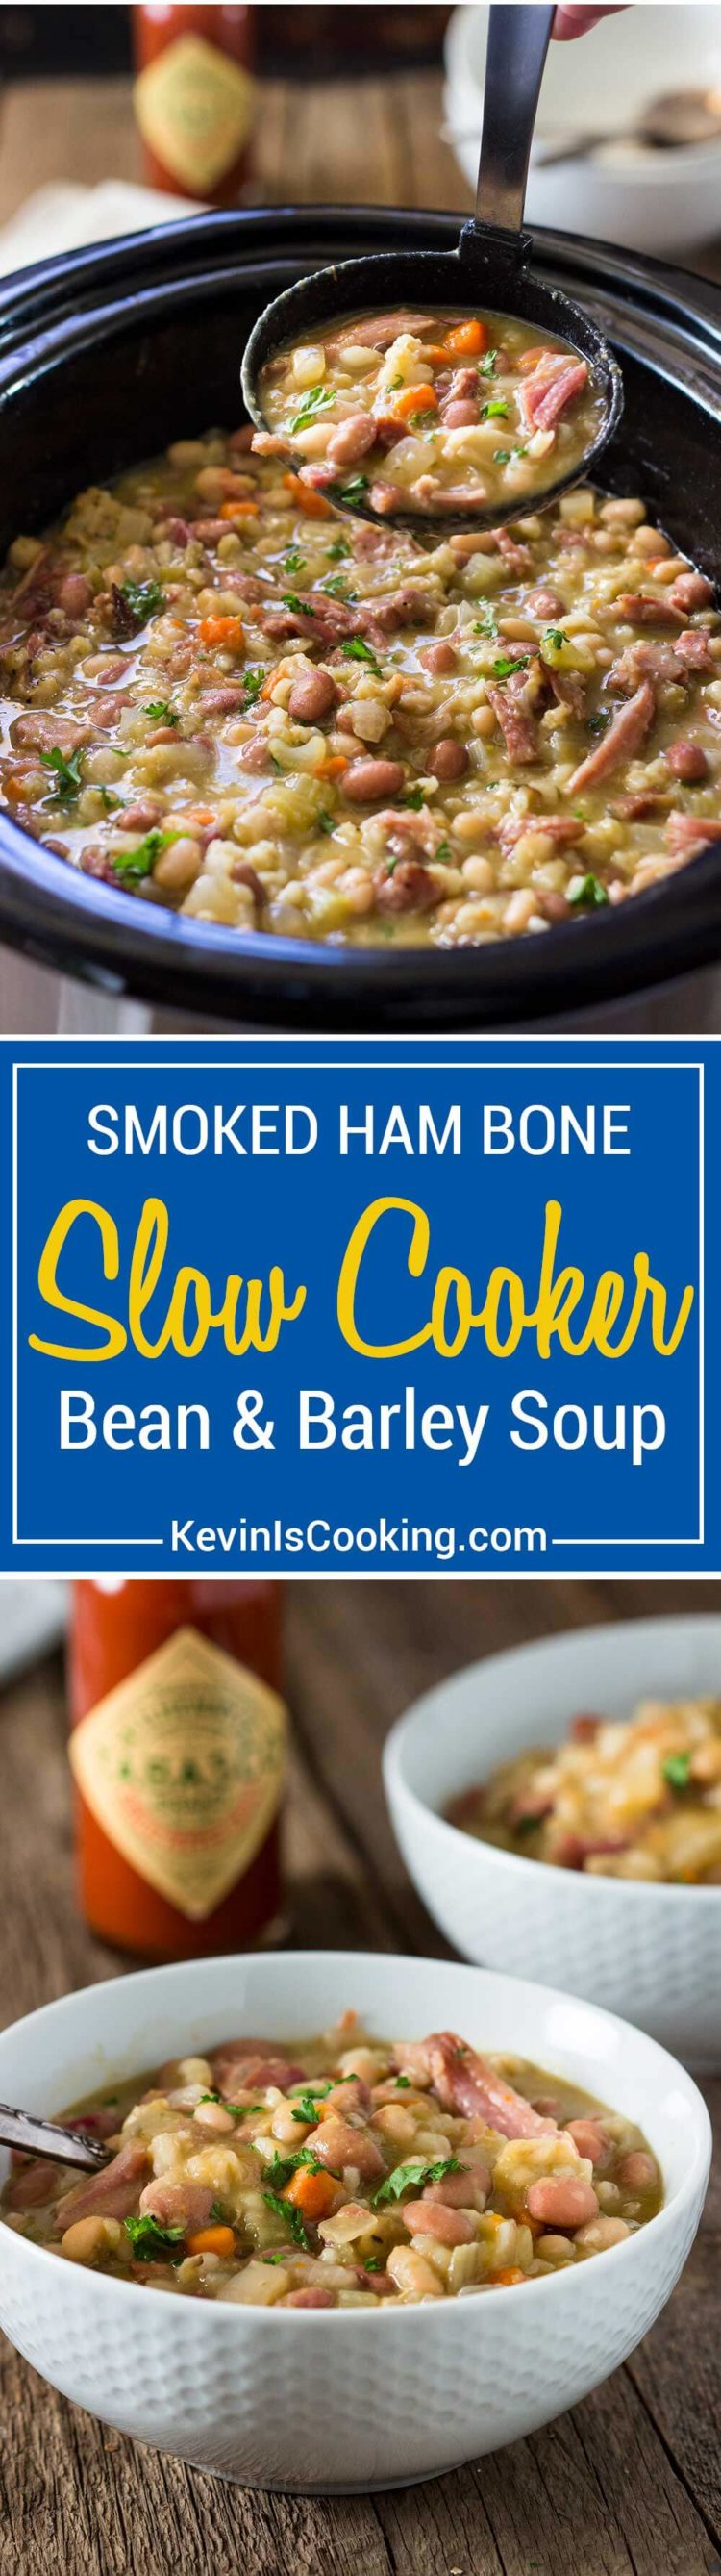 There's nothing like a Slow Cooker Ham Bone Bean Soup simmering away. Smoked ham bone with beans and barley, vegetables and Tabasco for that special touch.